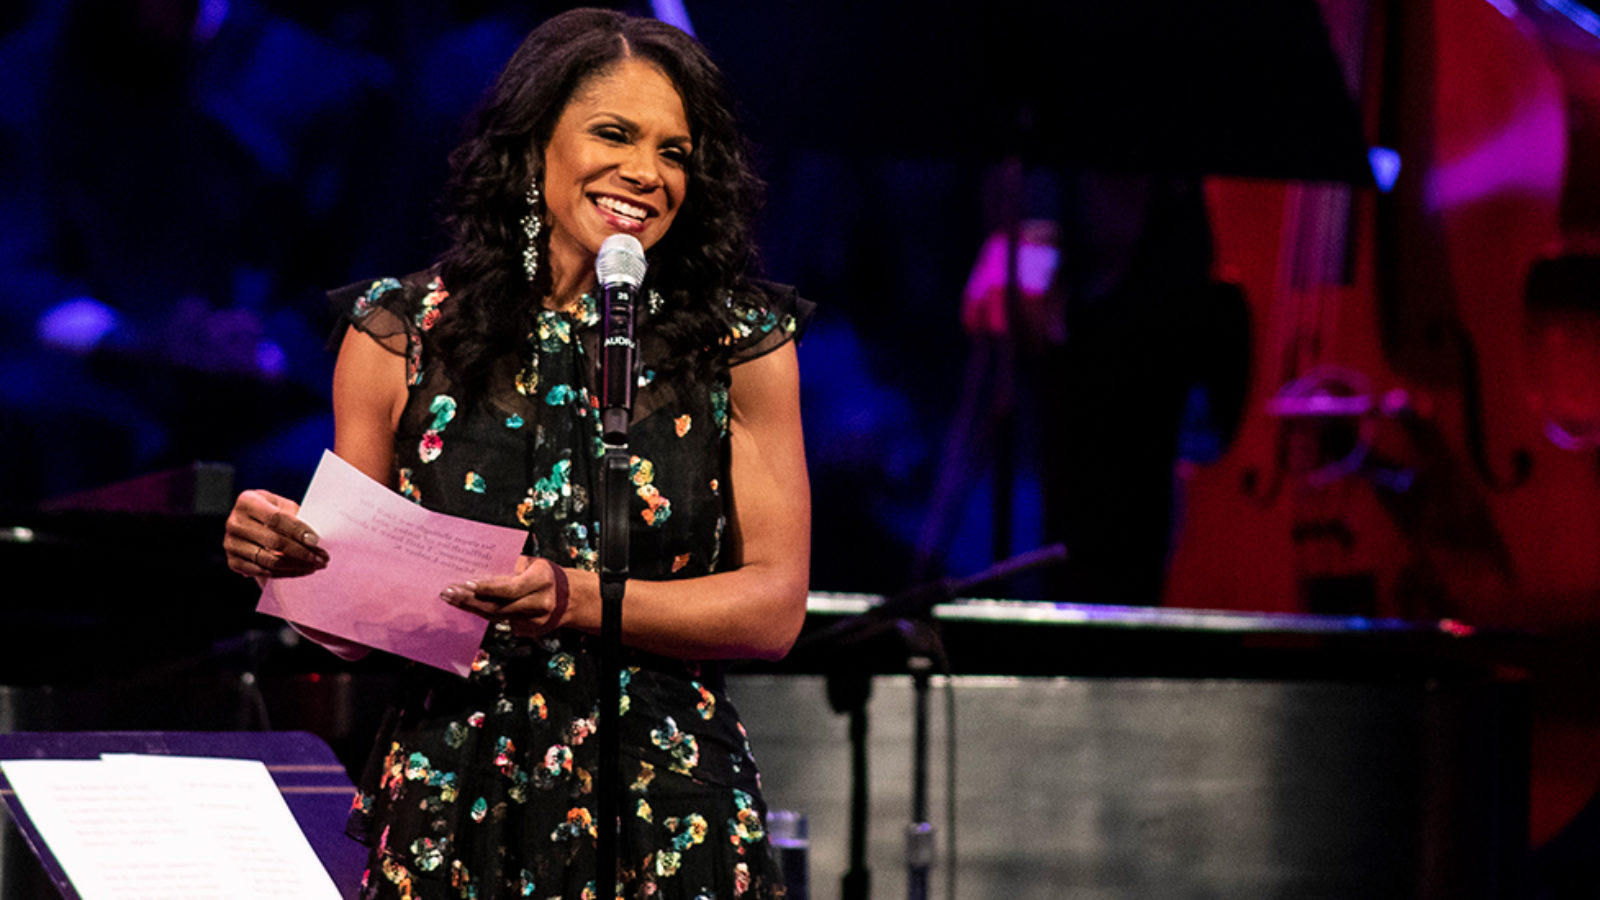 Audra McDonald speaks to the audience from the stage.